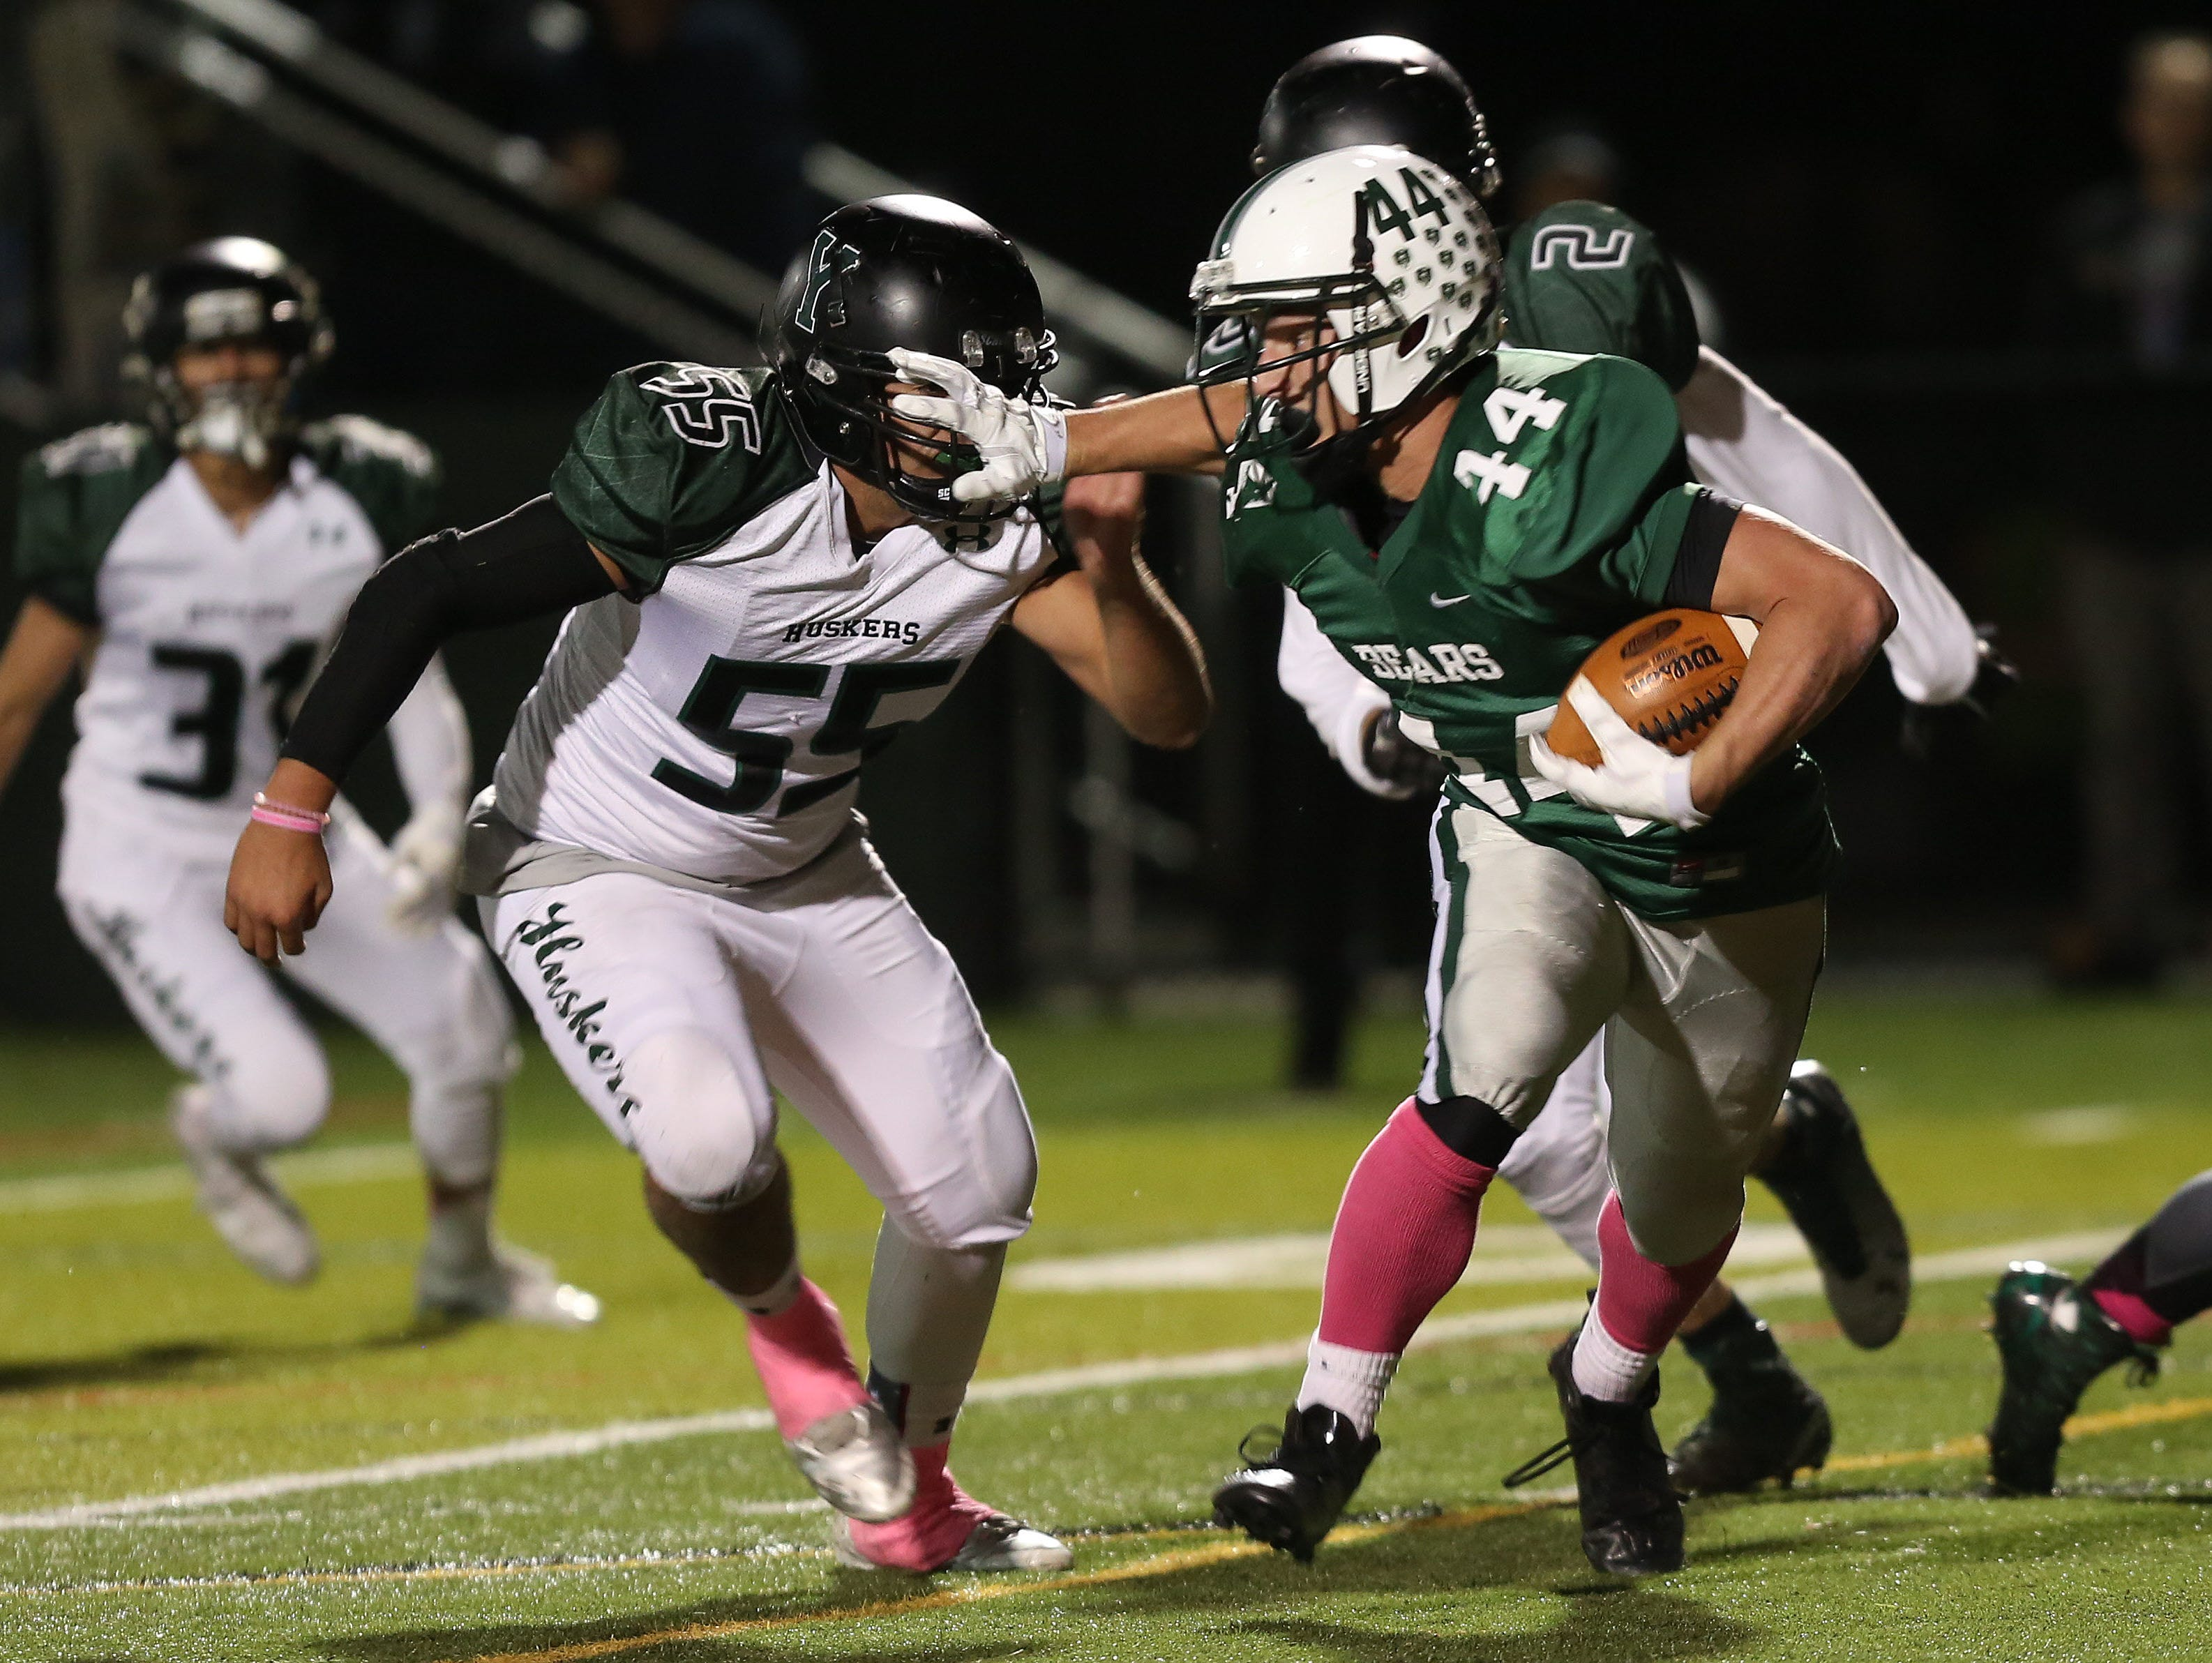 Yorktown's Justin Cavallo (55) and Jesse Bambach (2) stop Brewster's Jack Guida (44) on a first half run during a football playoff game at Brewster High School Oct. 23, 2015.